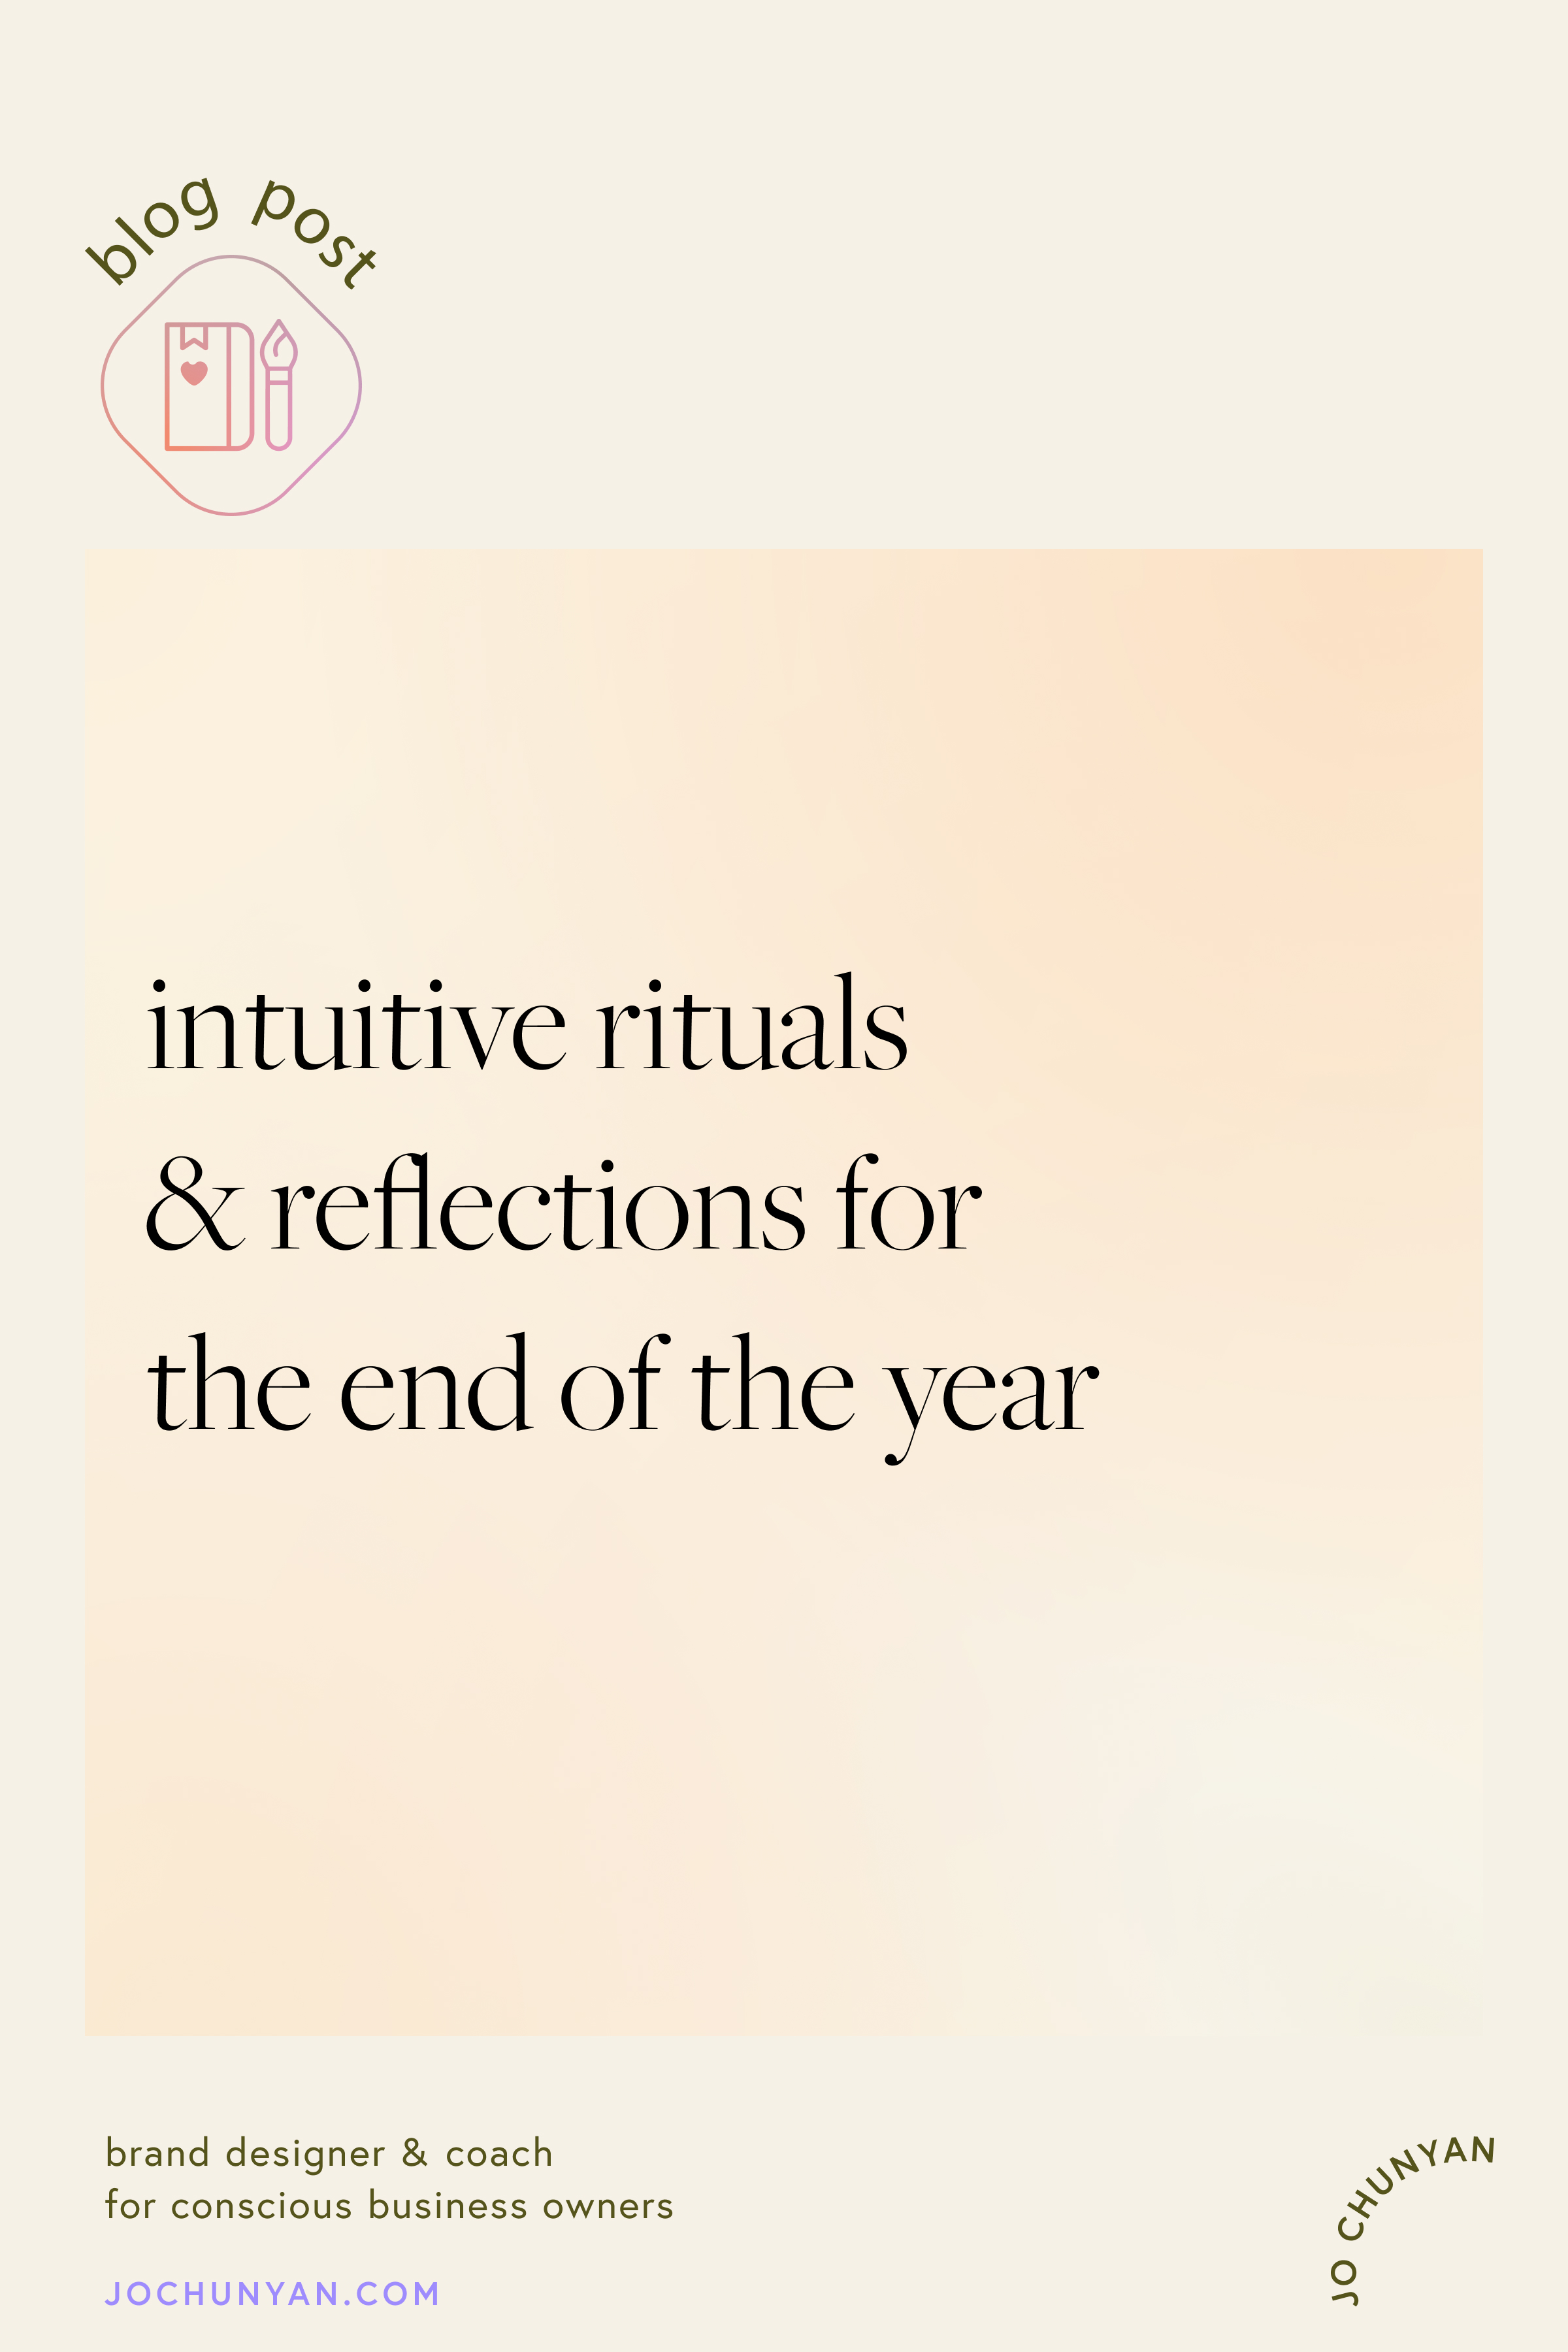 Intuitive rituals and reflections for the end of the year